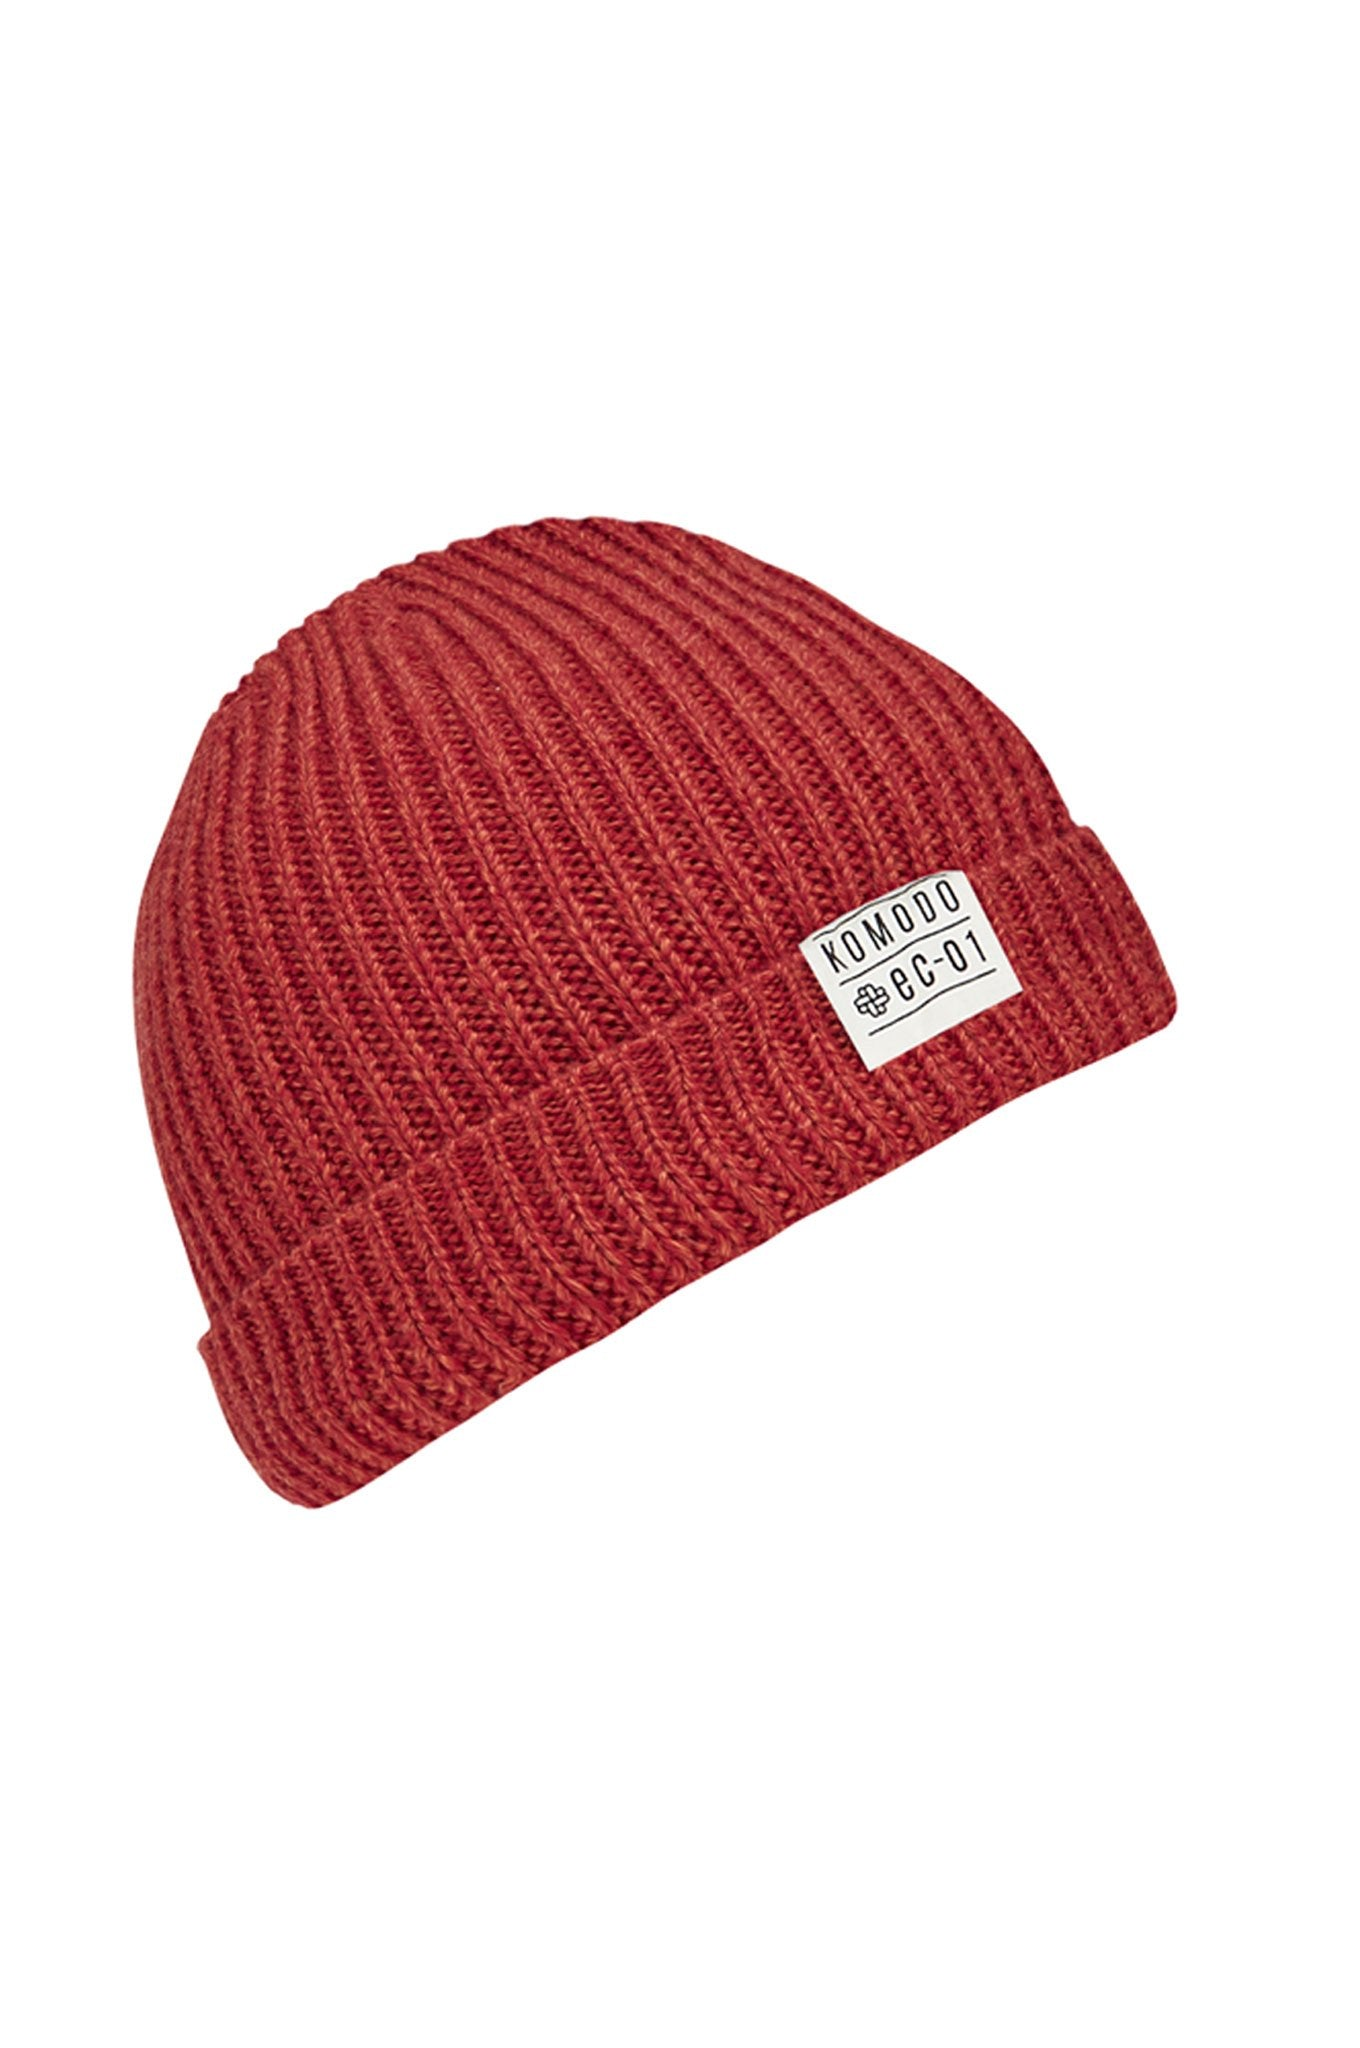 CHRISTOPHE Unisex Merino Hat Koi Red